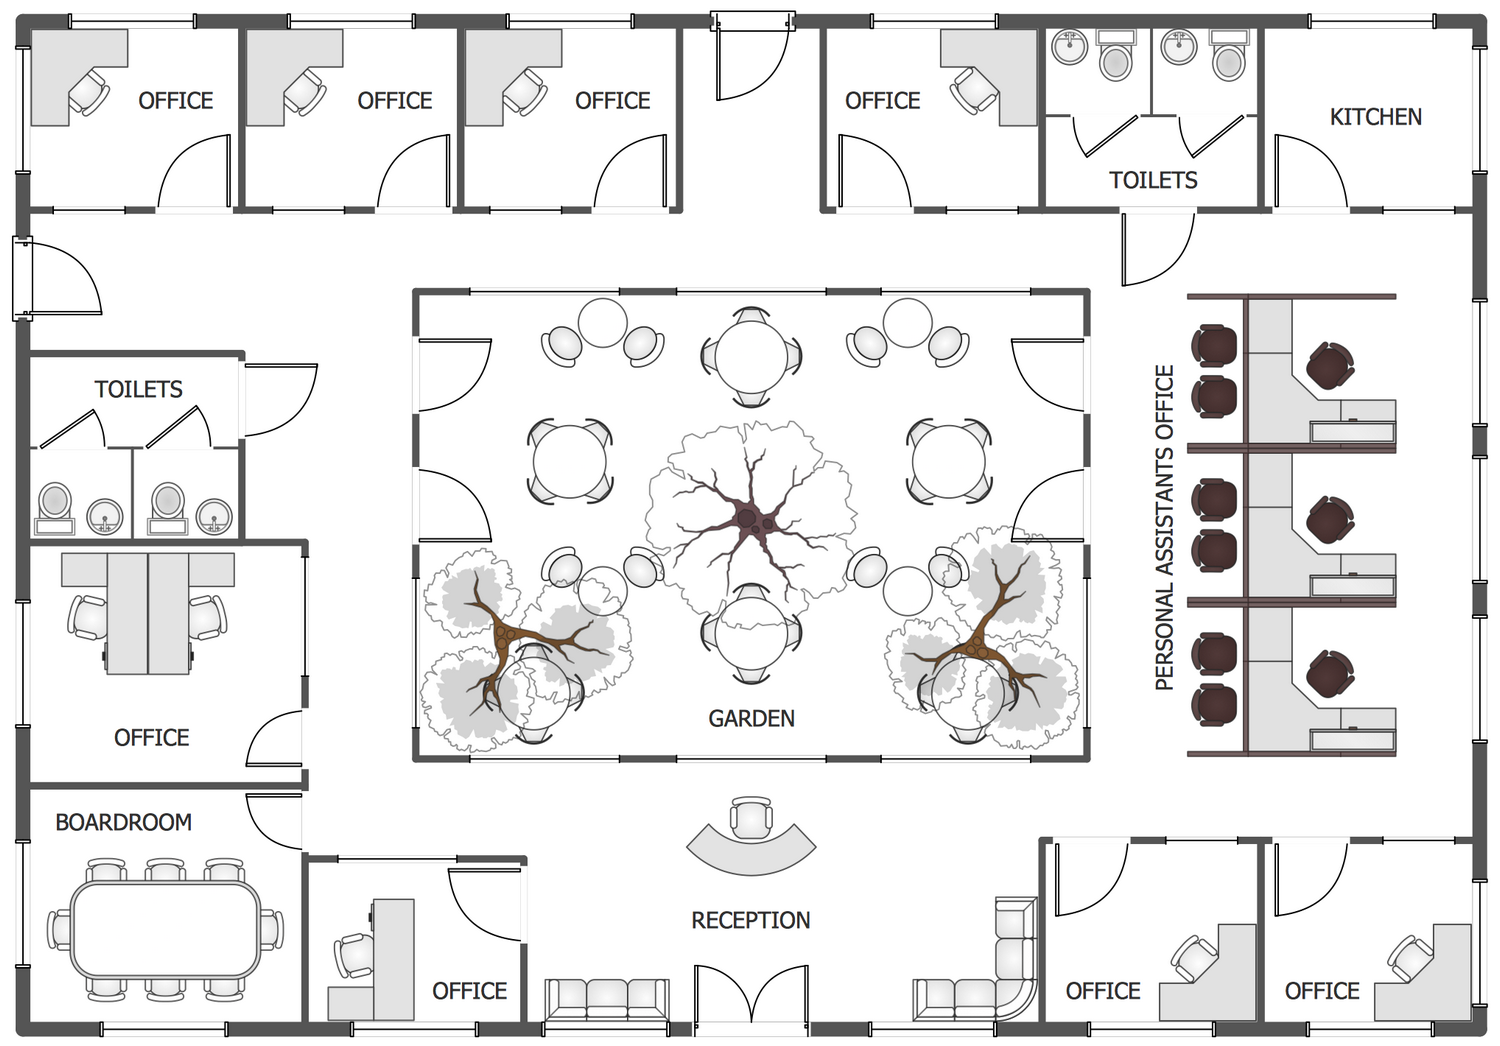 Office layout plans solution for Room layout builder